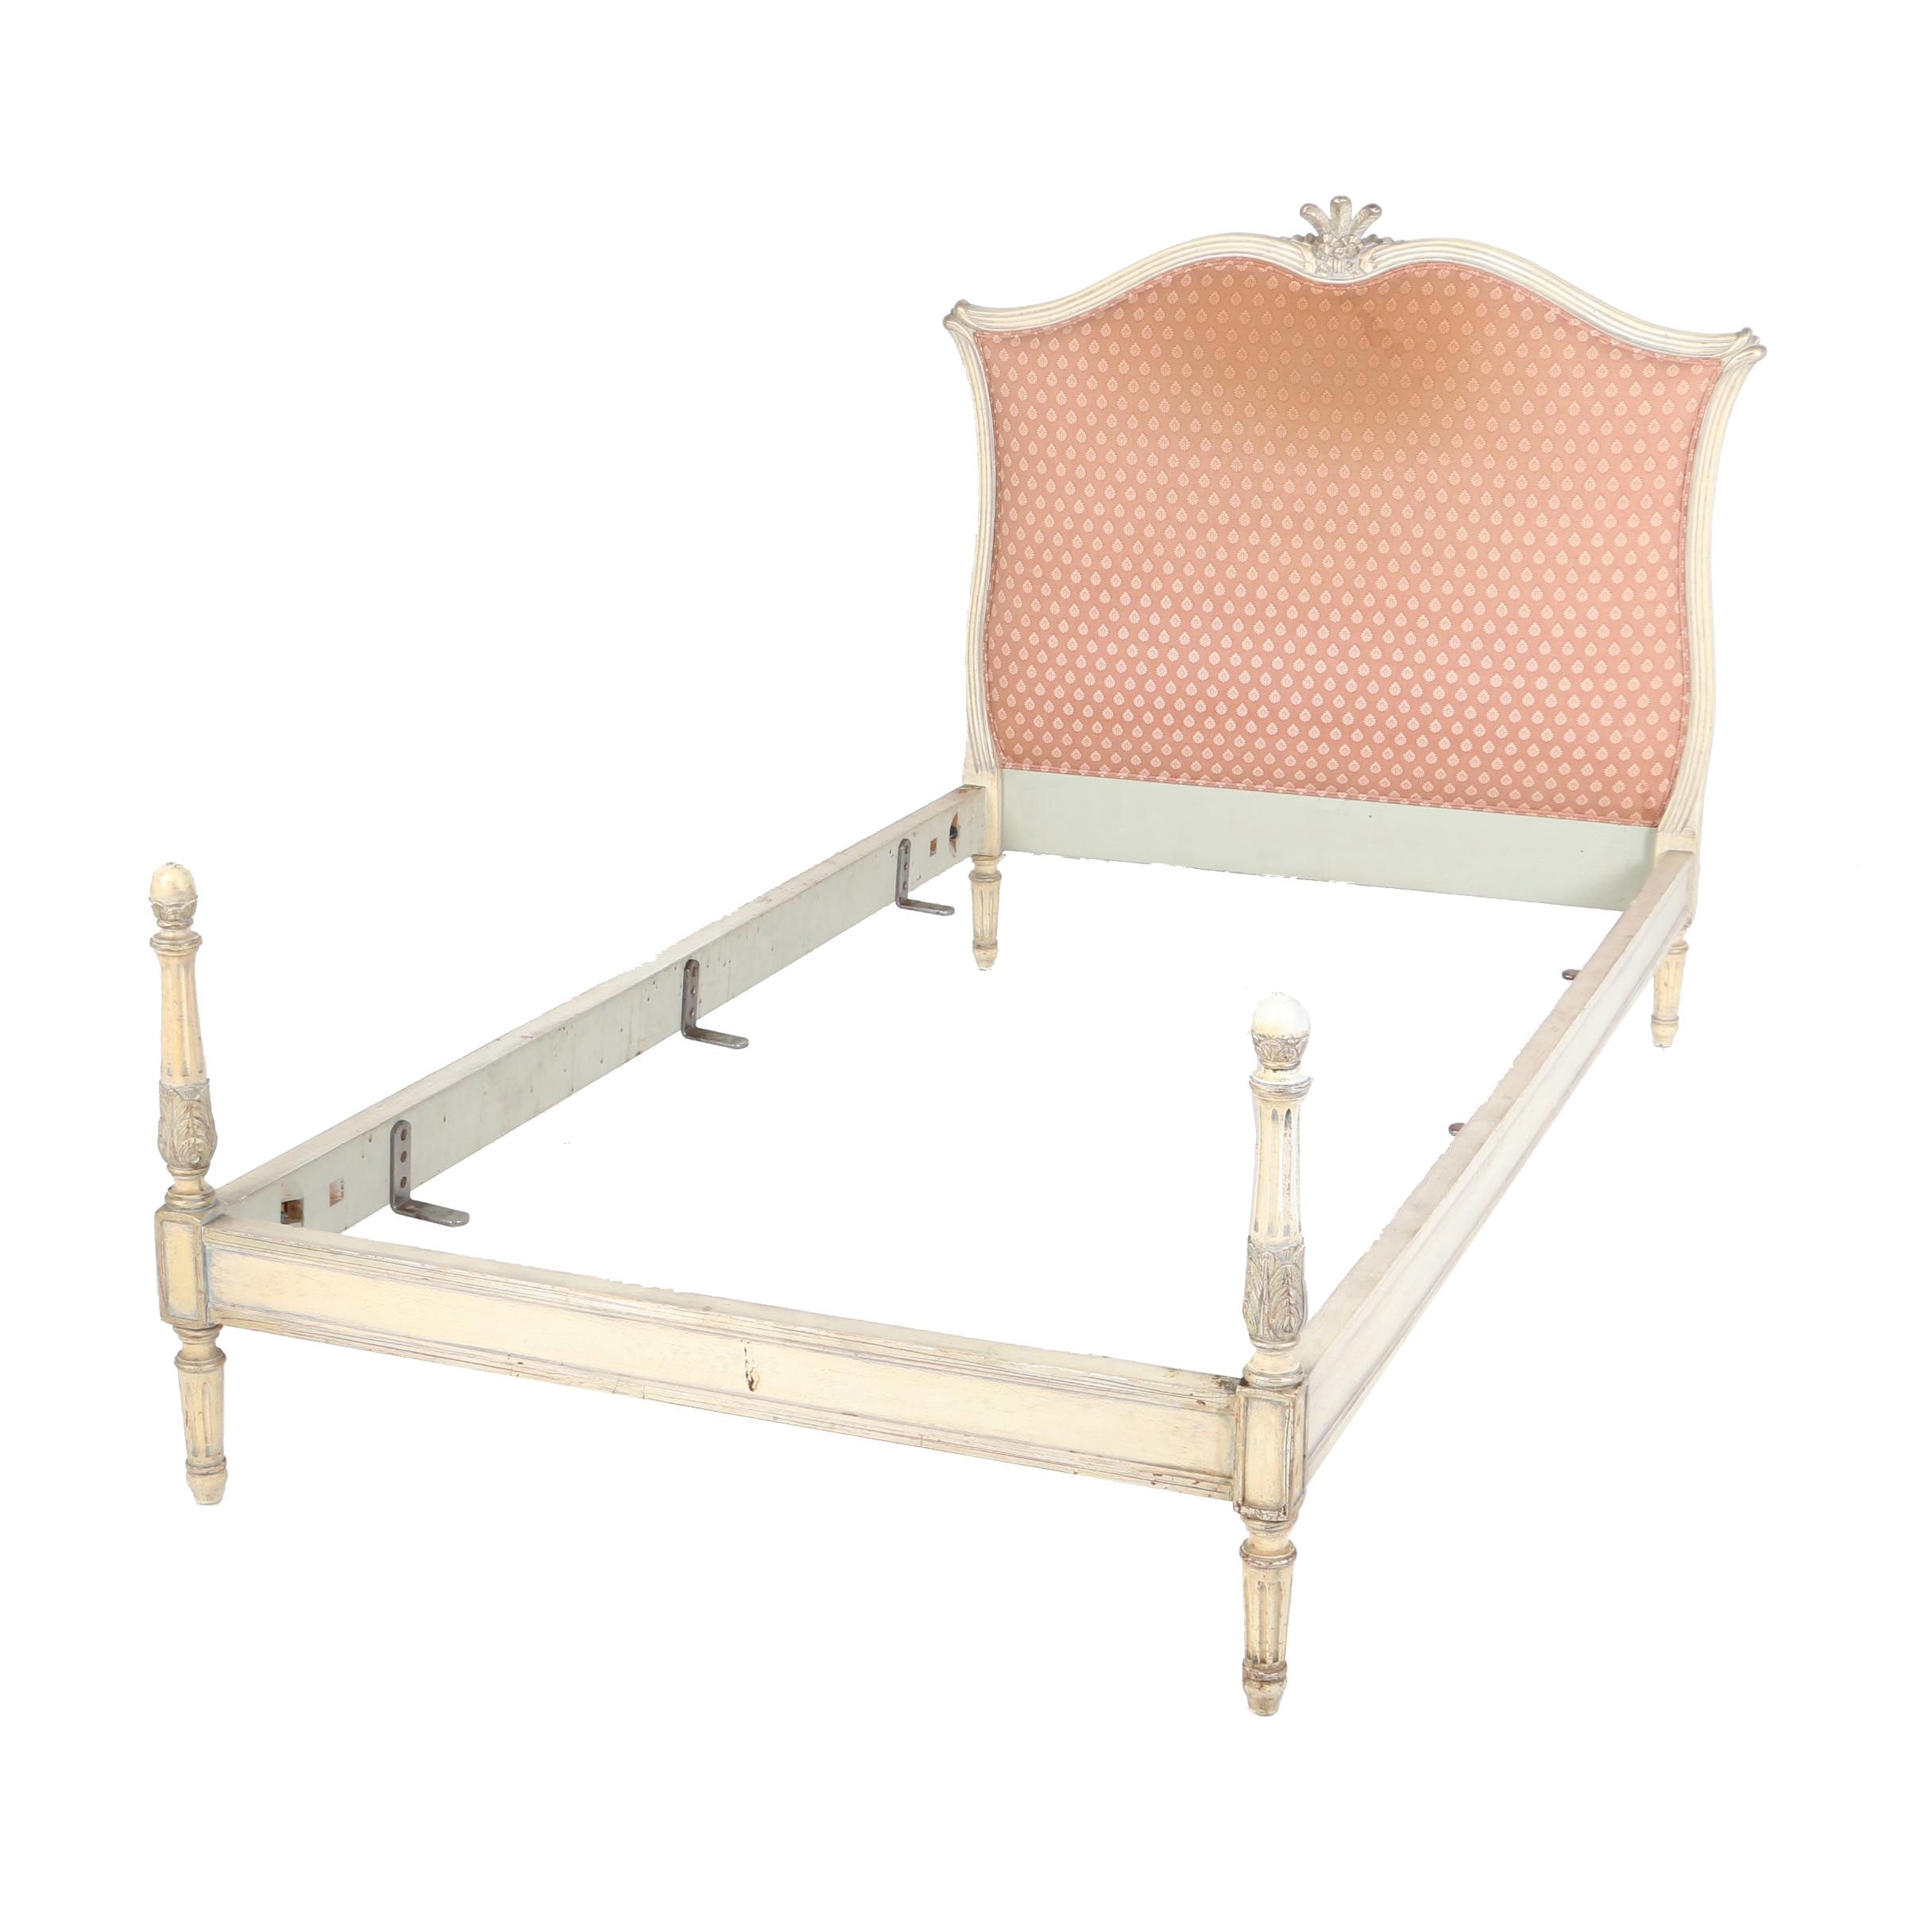 Louis XVI Style Cream-Painted and Parcel-Gilt Twin Size Bed Frame, 20th Century